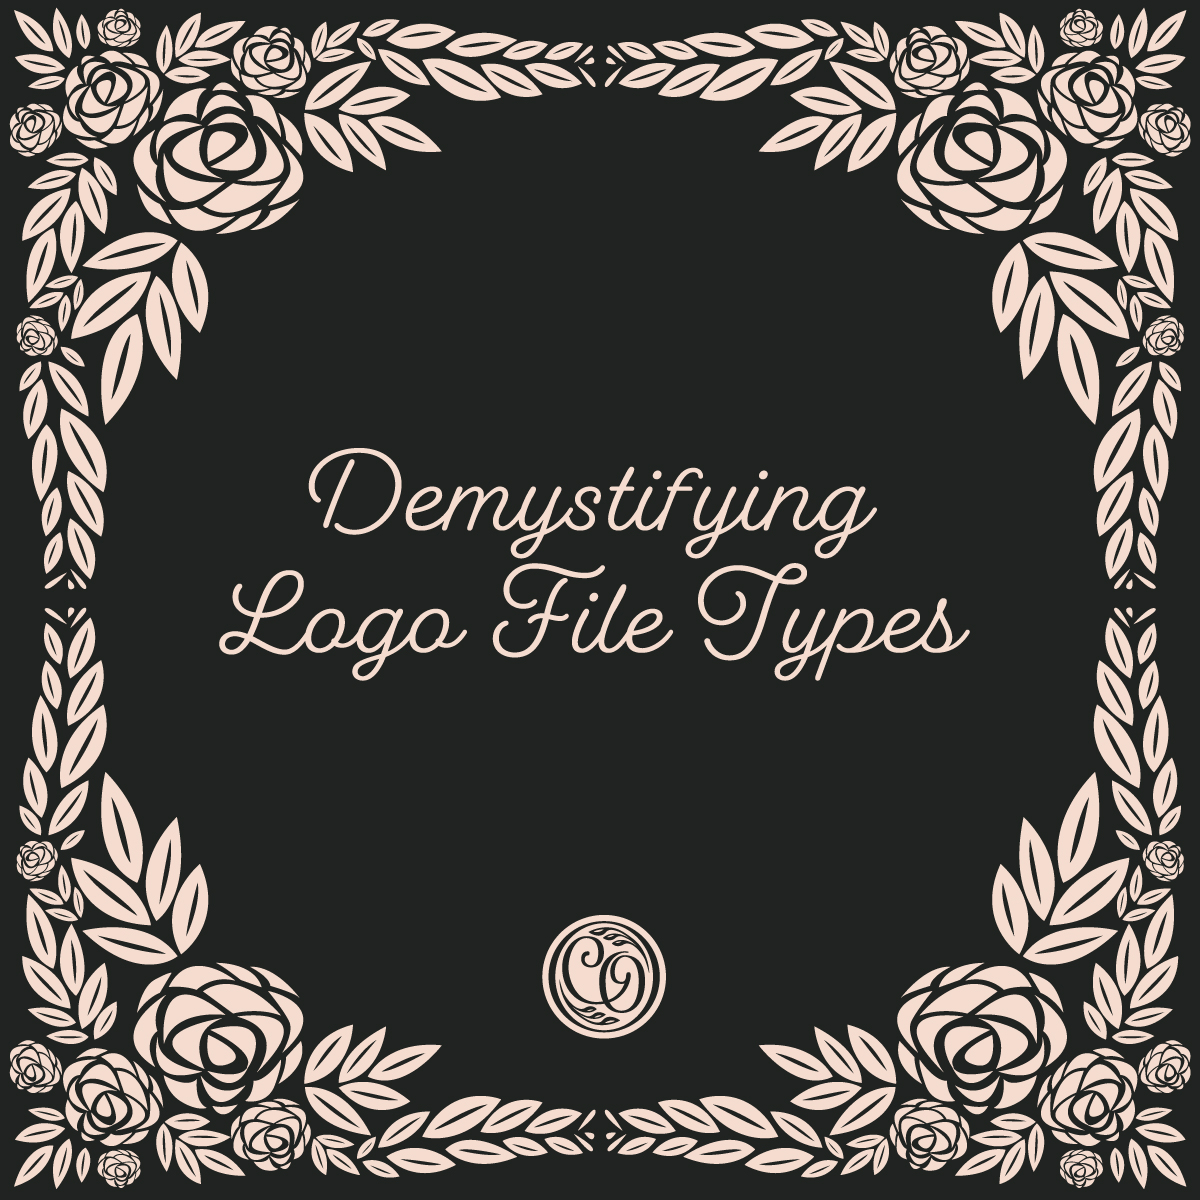 Logo File Types Explanation